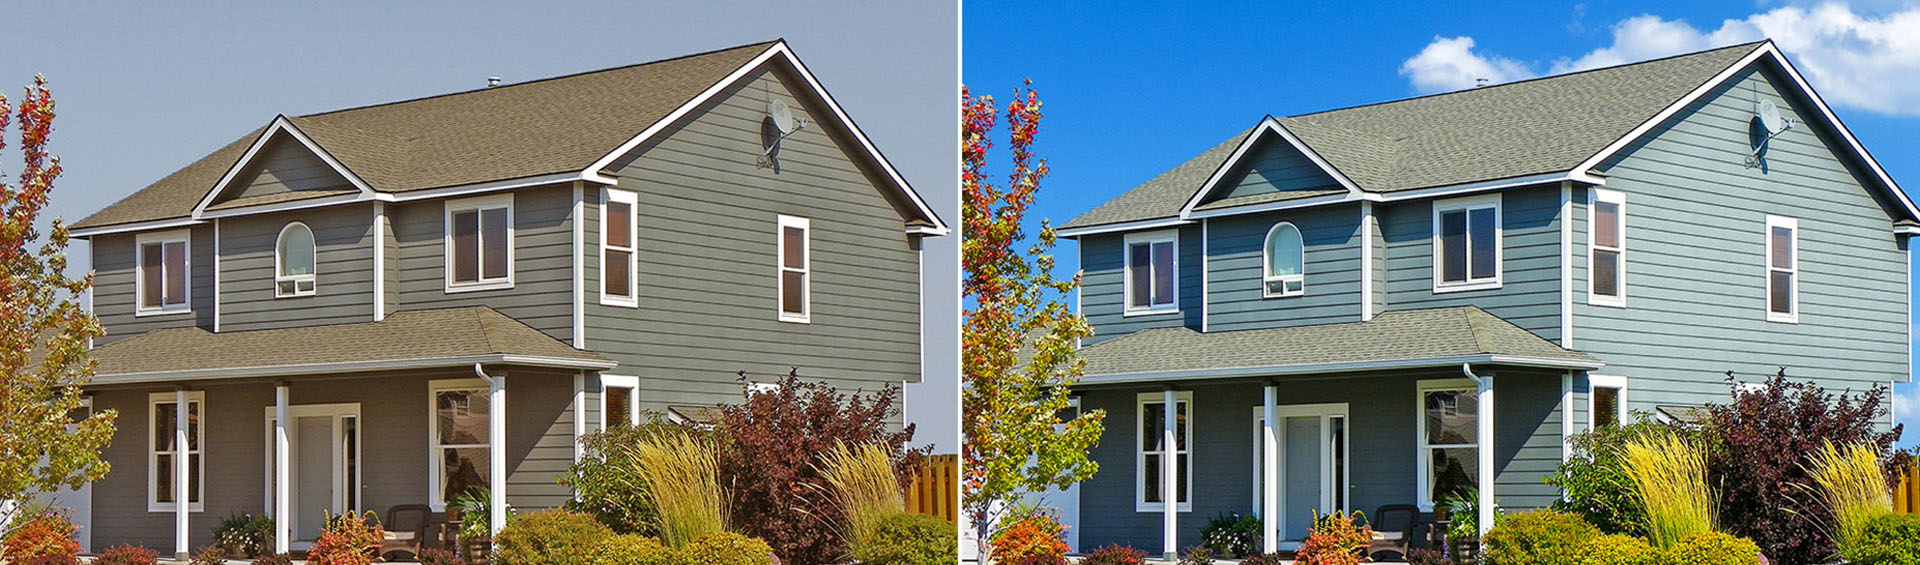 Real Estate Sky Replacement and Color Correction Services